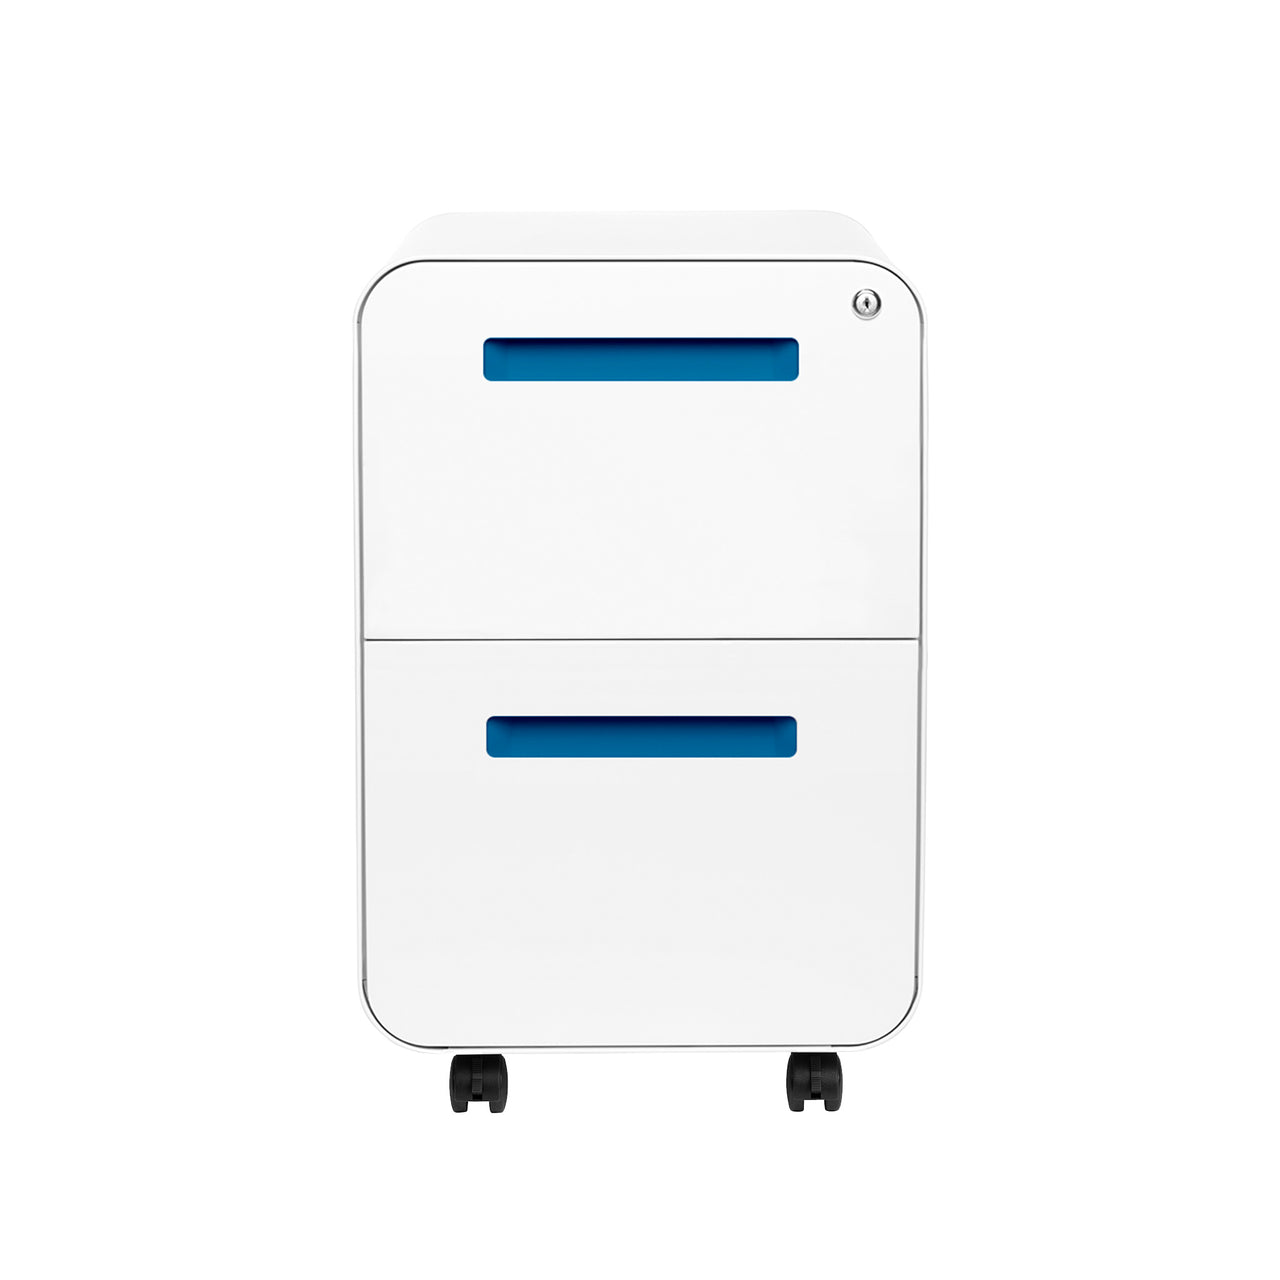 Stockpile Curve 2-Drawer File Cabinet (White/Blue)